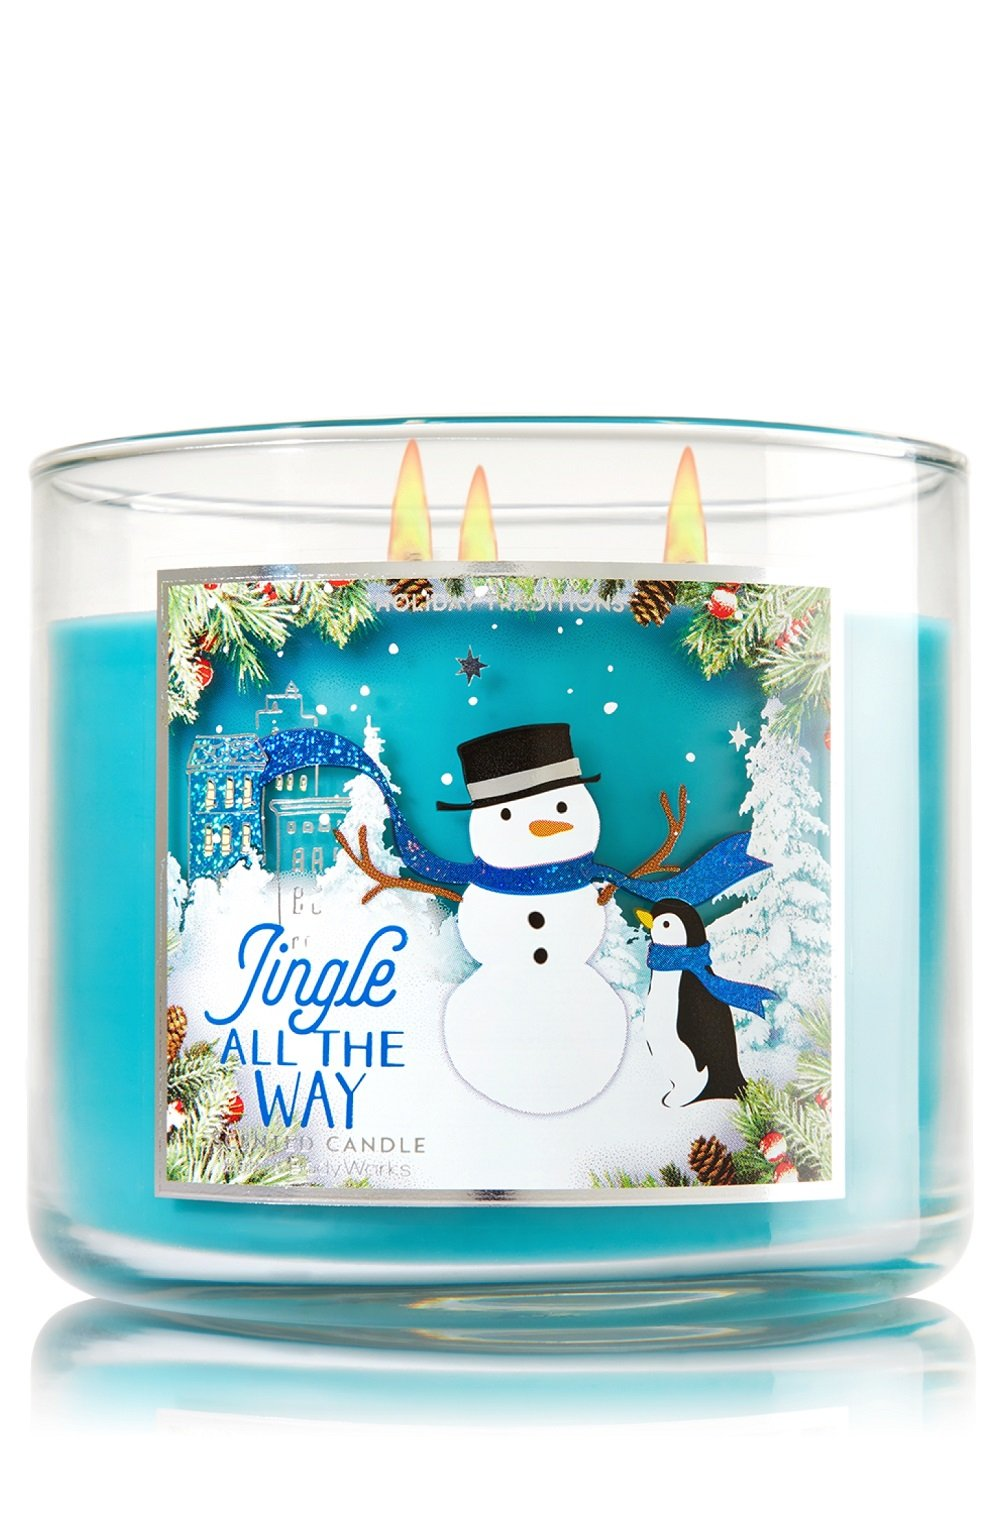 Bath & Body Works JINGLE ALL THE WAY 3-Wick Candle (14.5 oz)